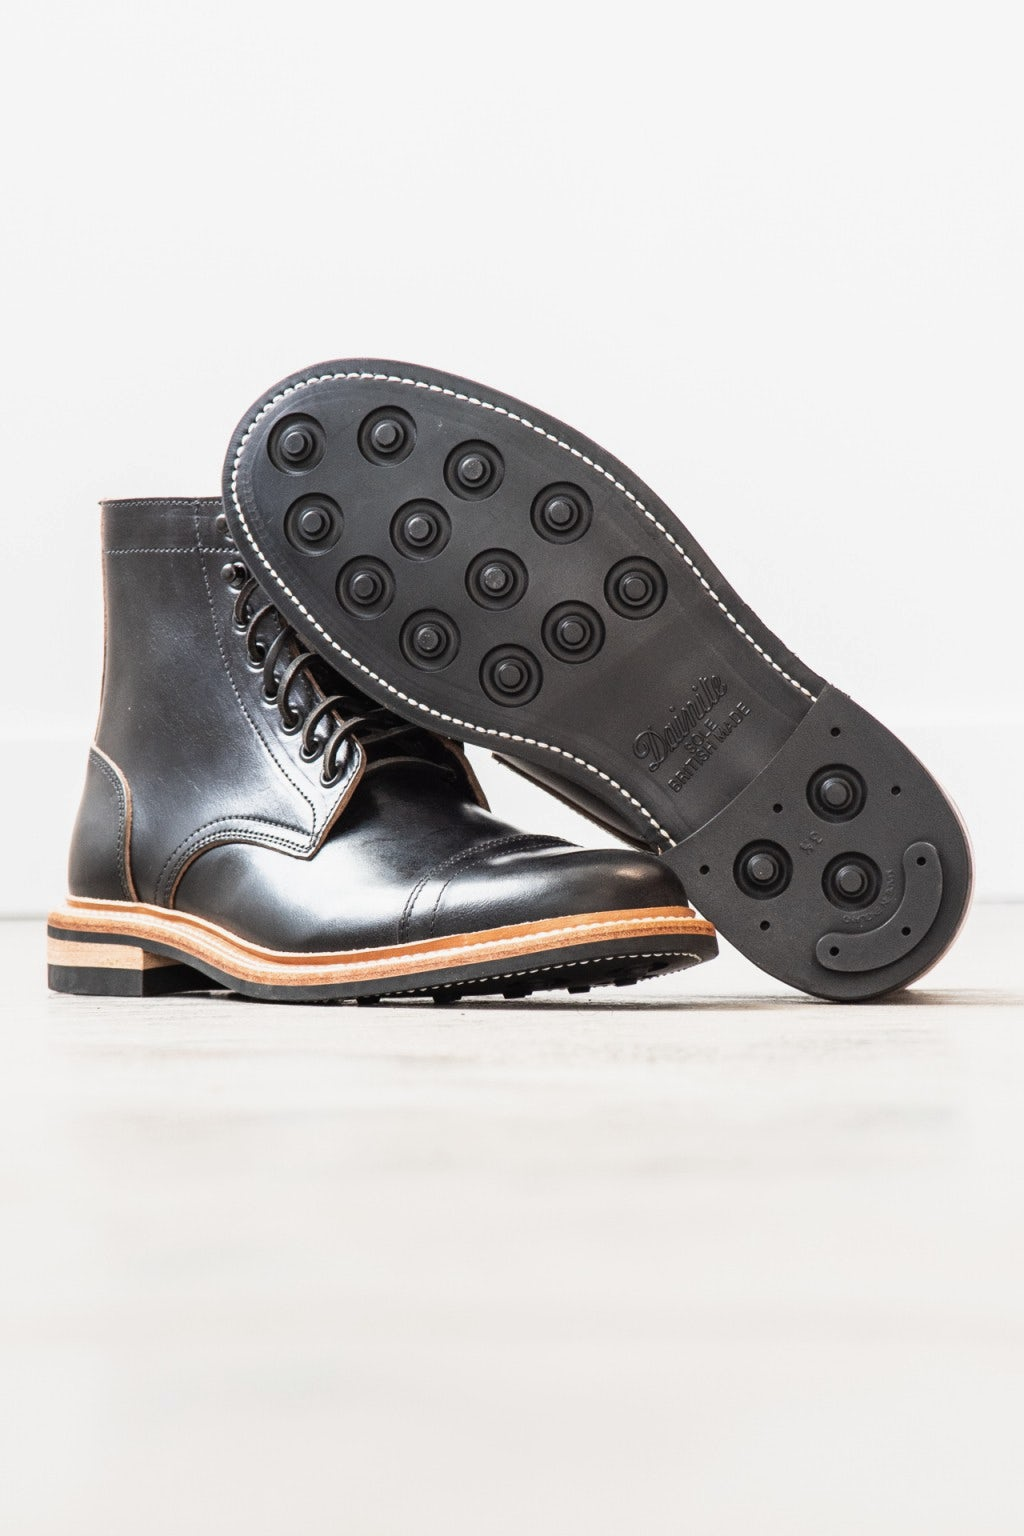 Oak Street Bootmakers Cap-Toe Trench Boot Black Chromexcel